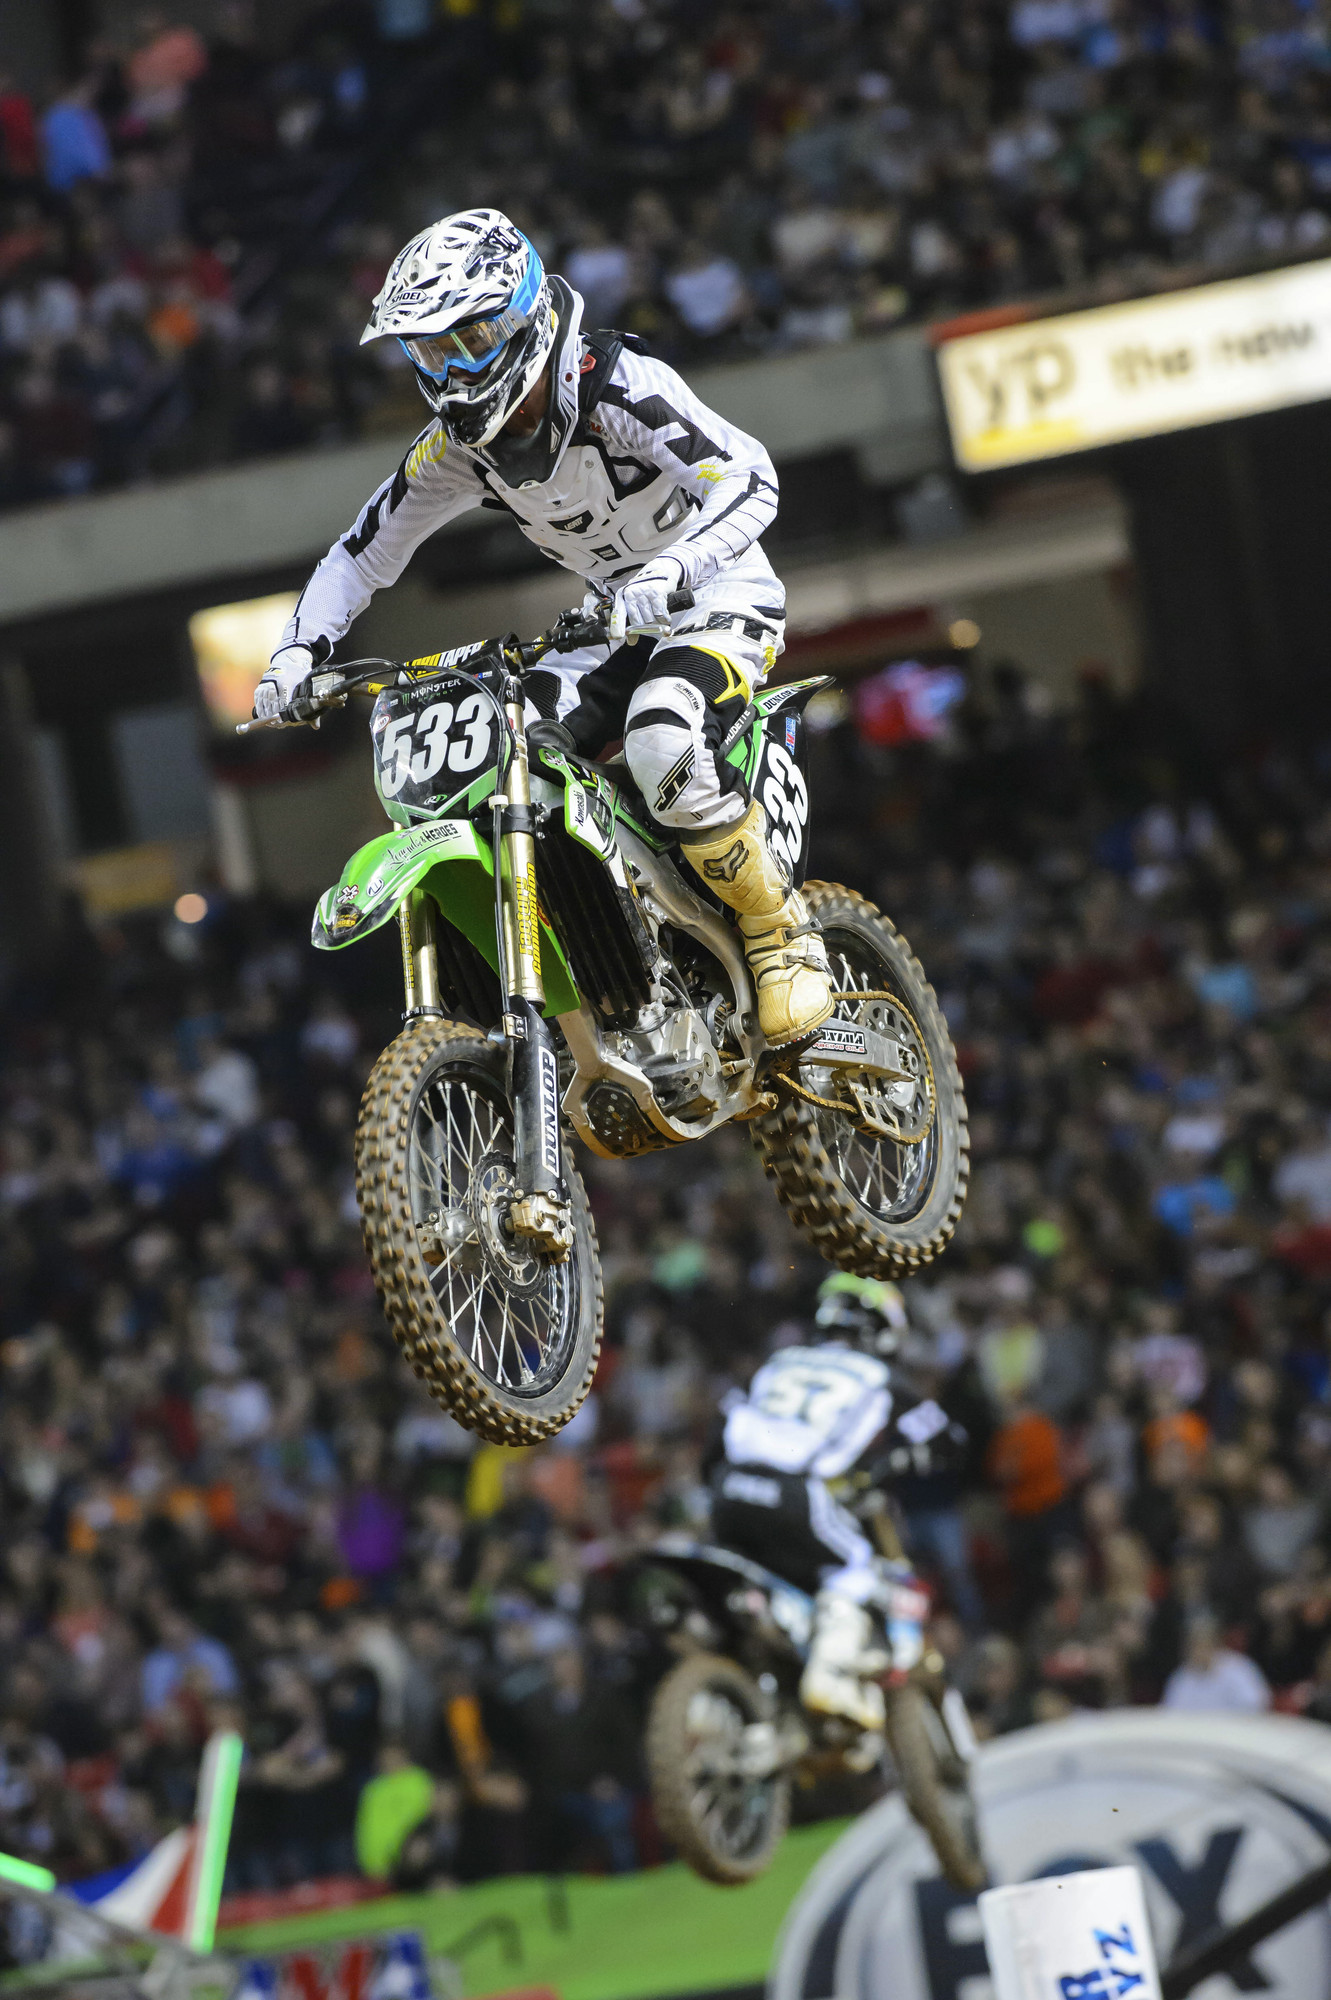 Audette-AtlantaSX_News_2014_MOTOSPORTS_SCOTT Sports_EN.jpg